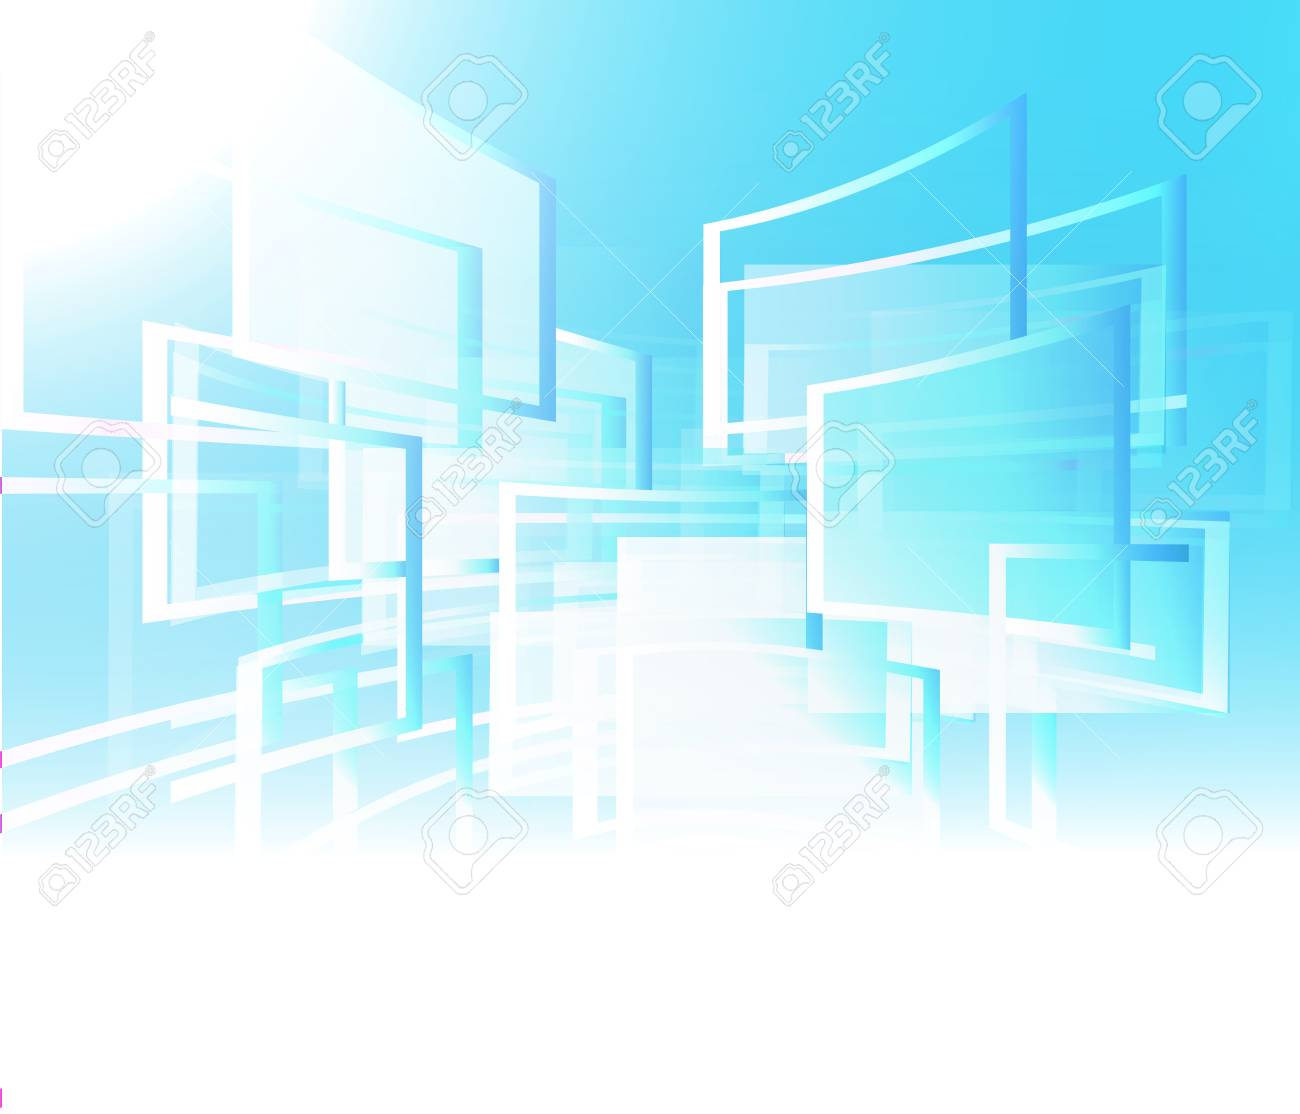 background abstract vector illustration background web page